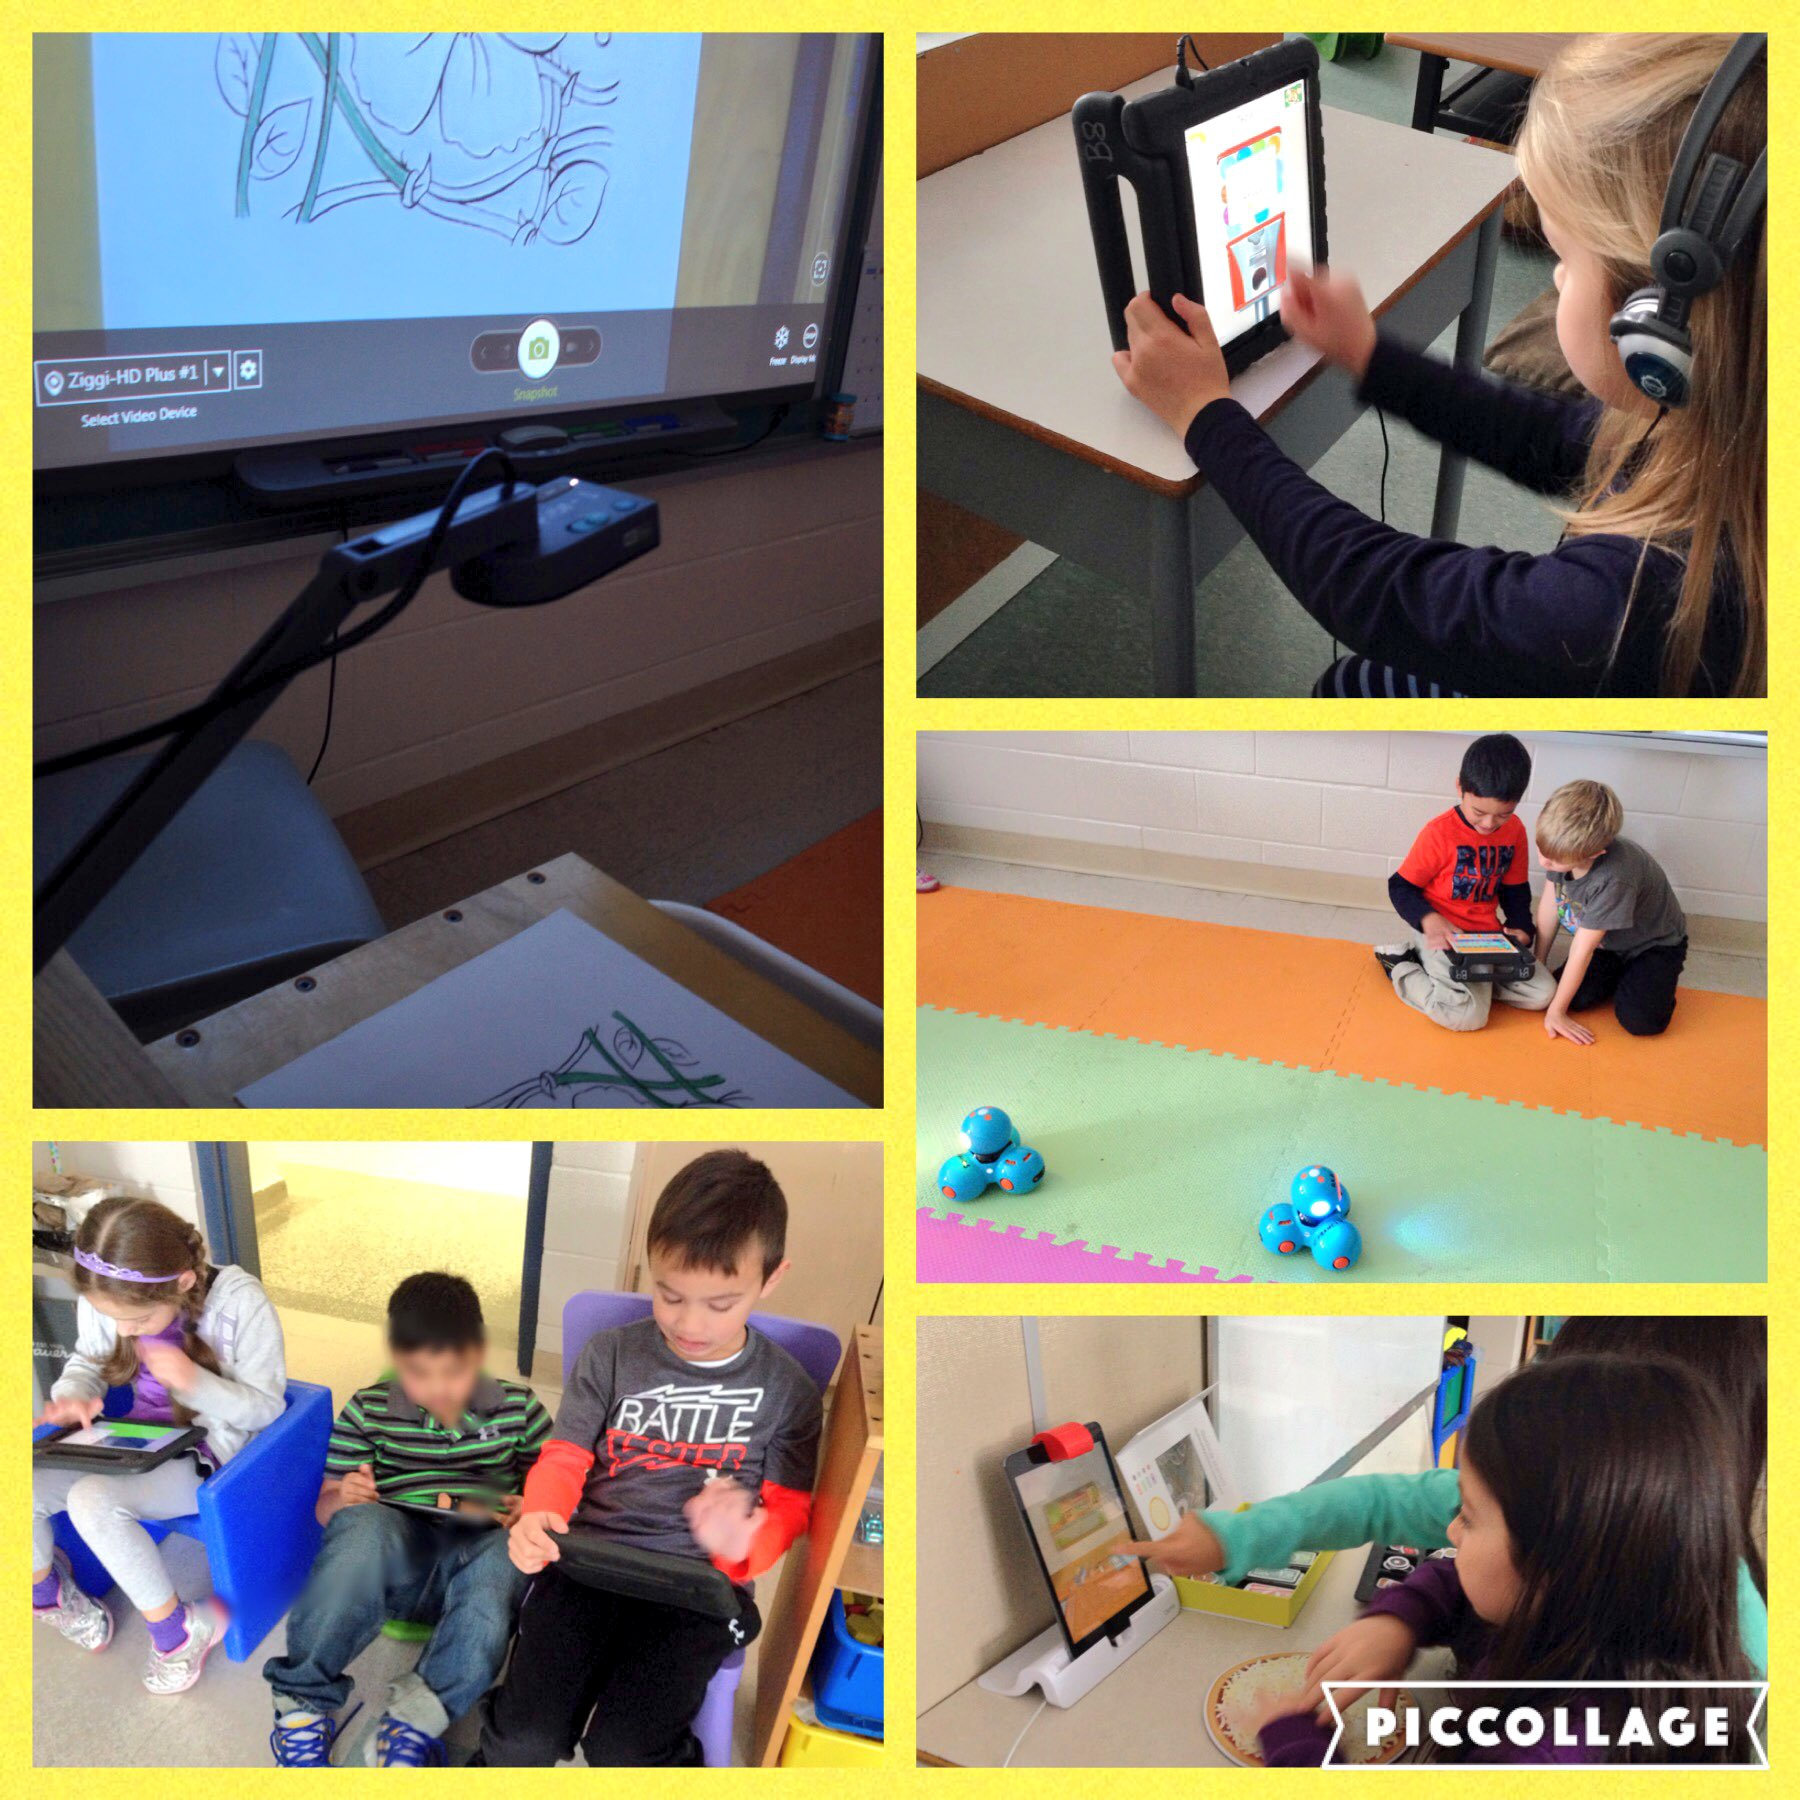 Grade 1 students engaged in learning with technology. @FRAAssisiSchool #ontariocodes #ocsb https://t.co/hgdY9bYXVi